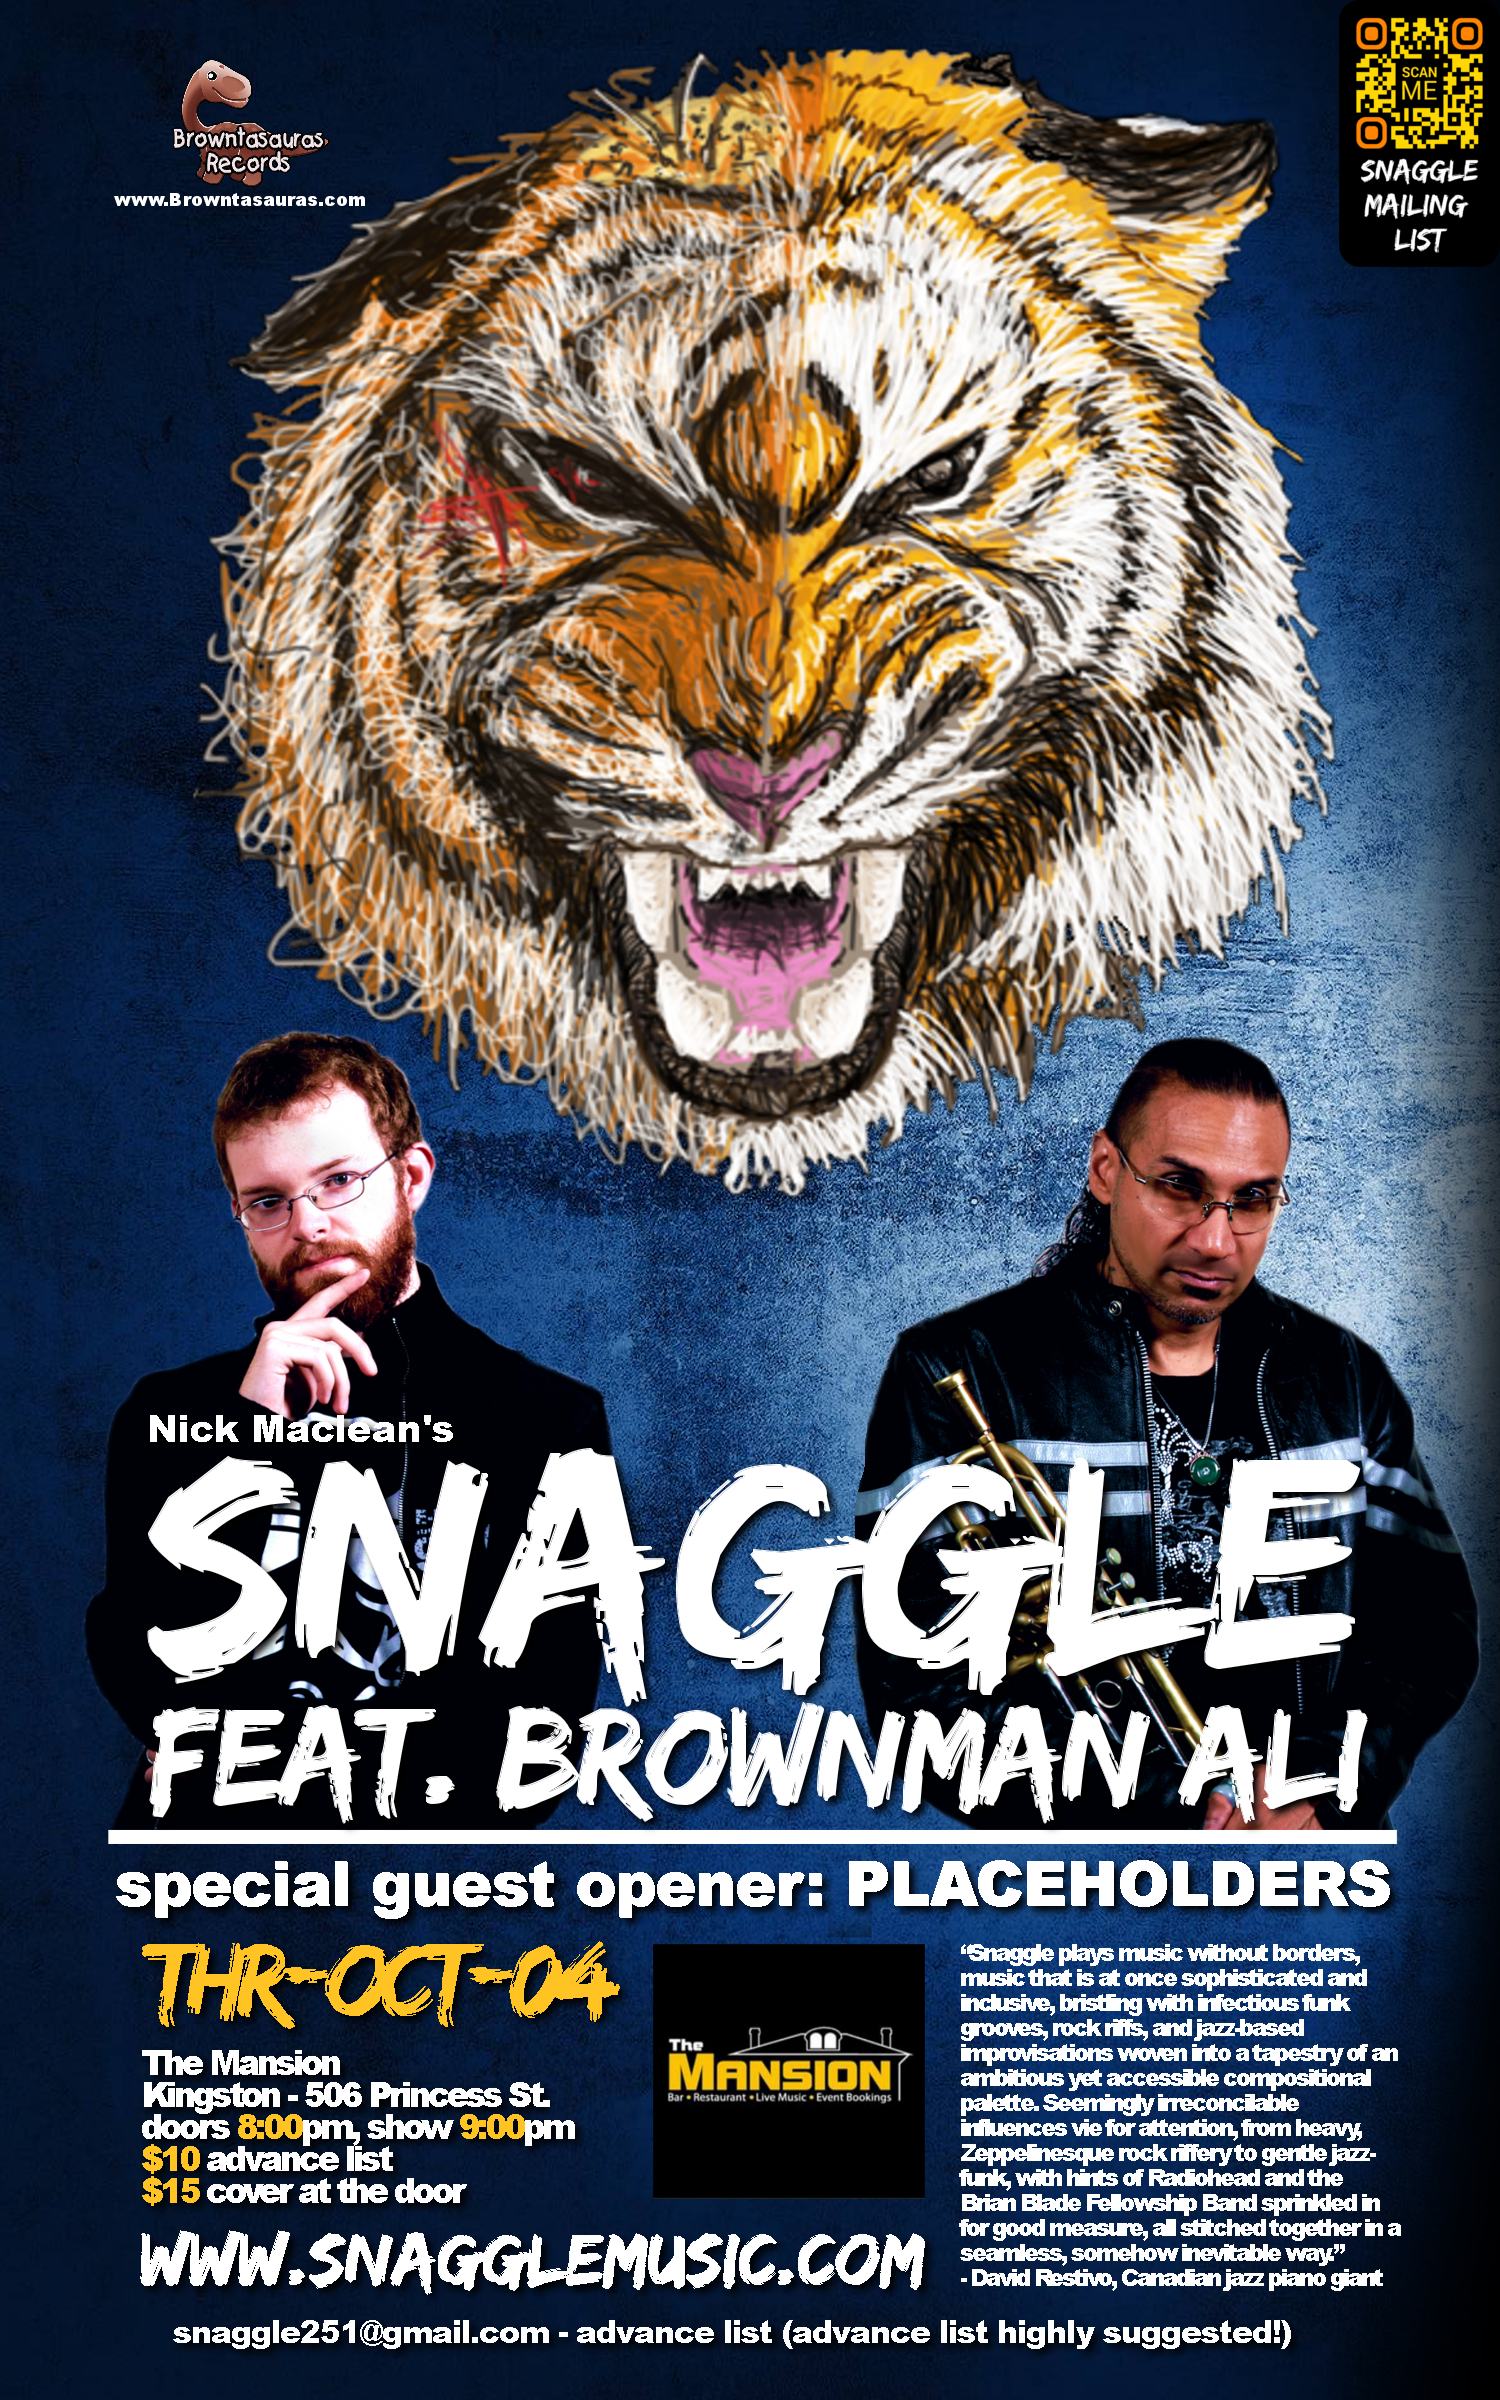 SNAGGLE feat. BROWNMAN ALI (kingston) w/ special guest opening act: PLACEHOLDERS